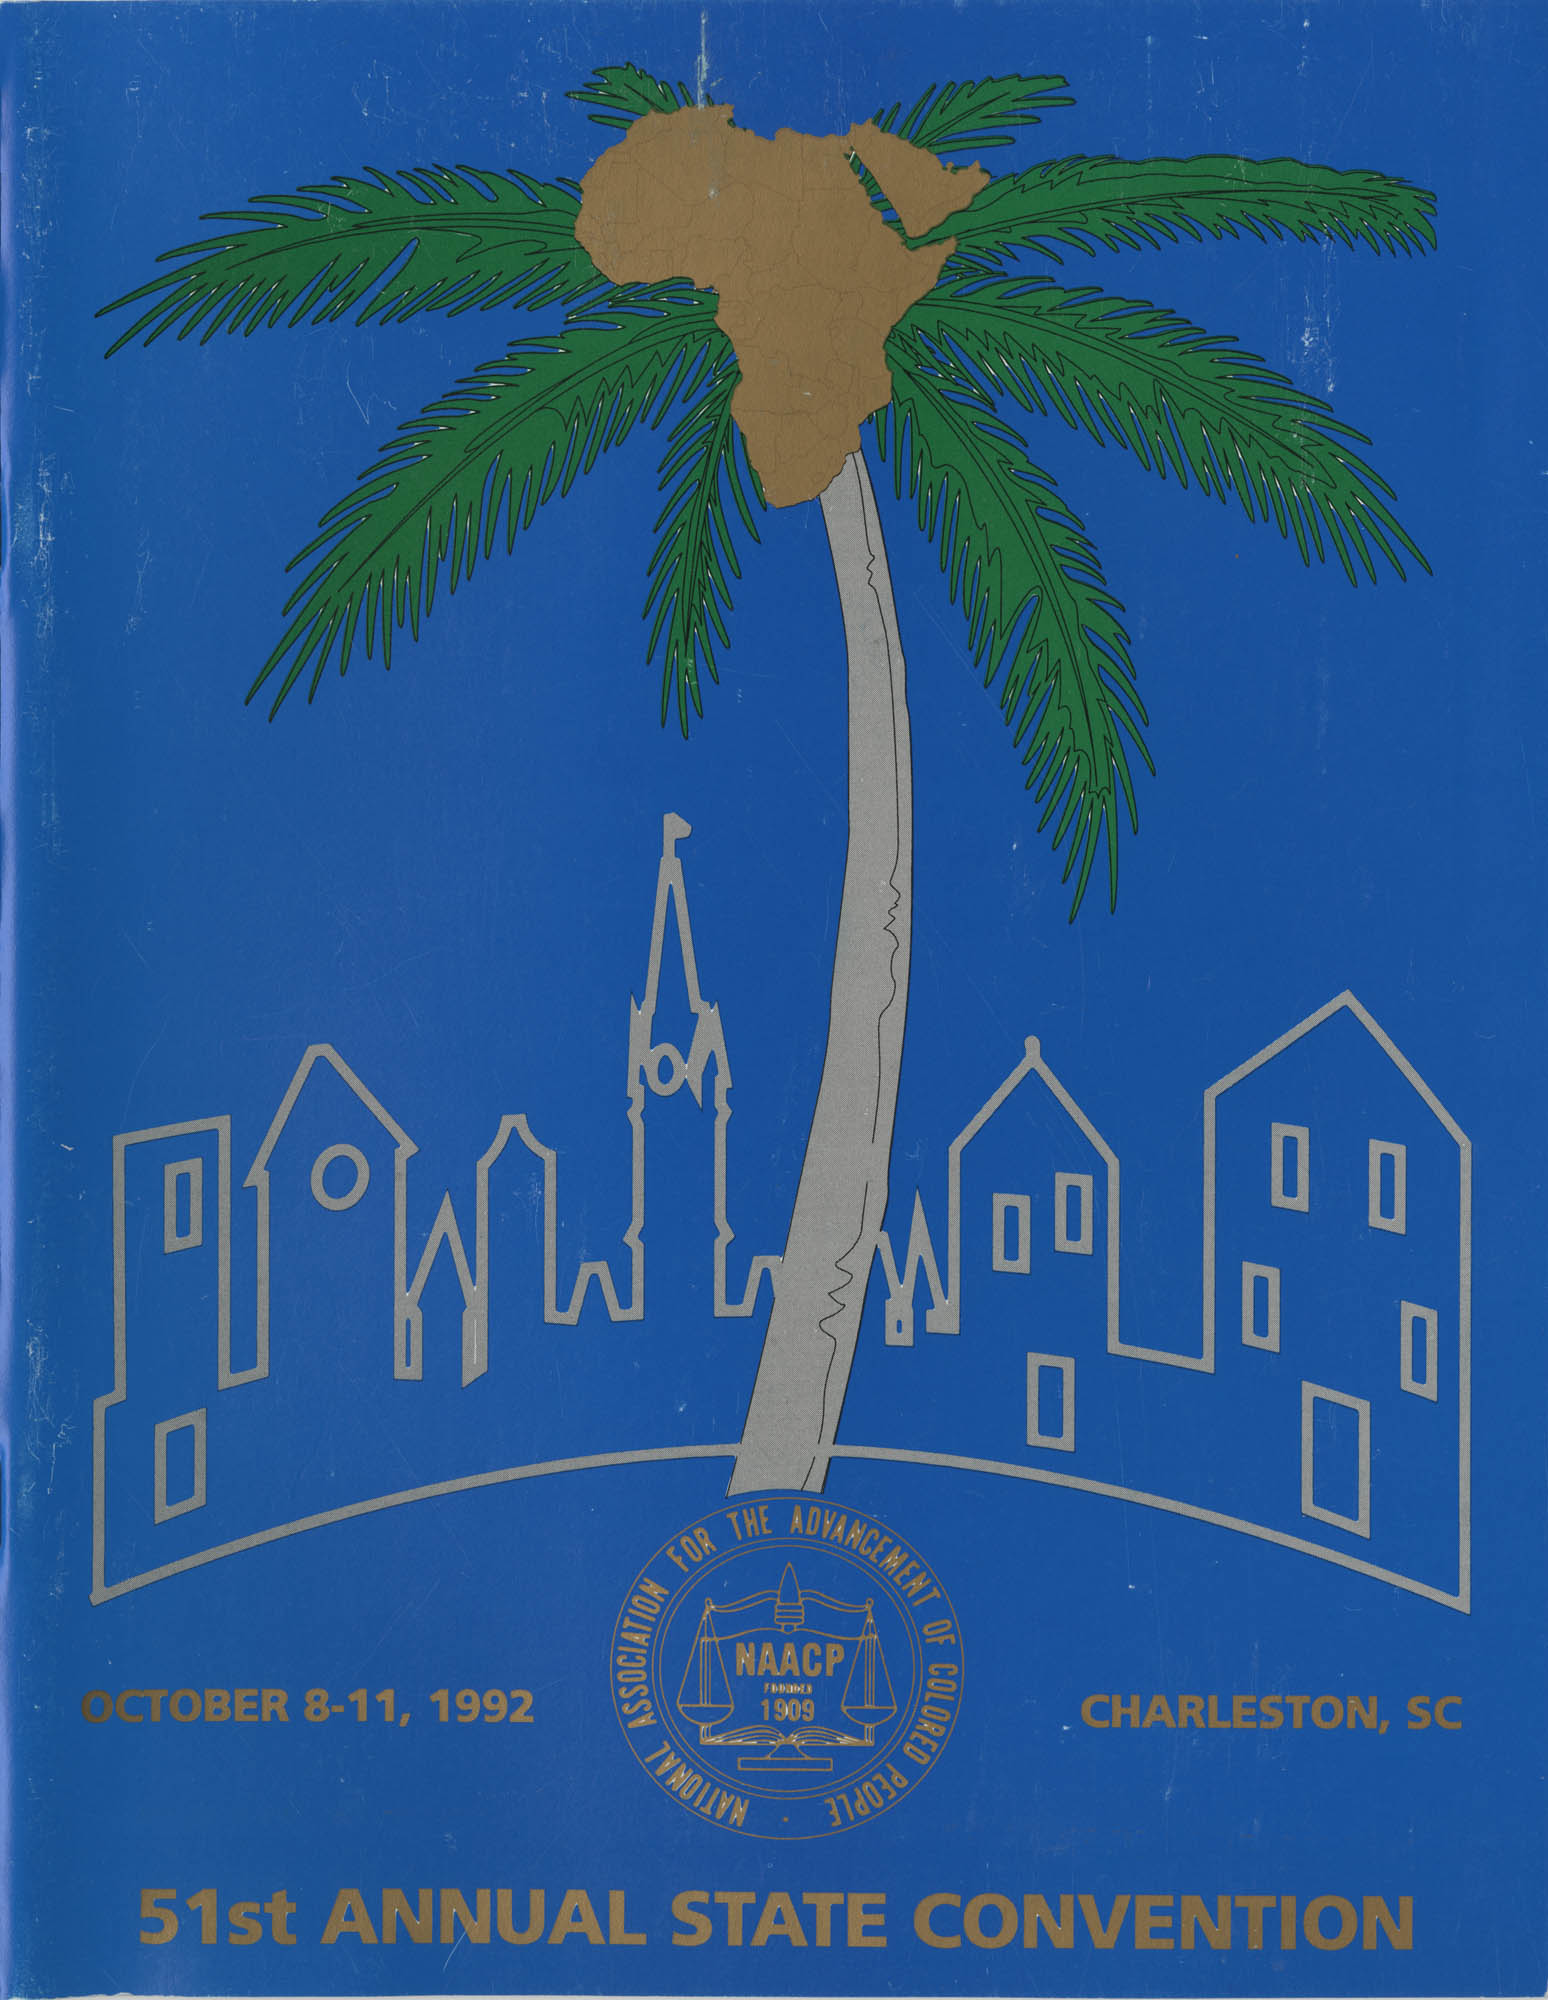 Charleston Branch of the NAACP 51st Annual State Convention Program